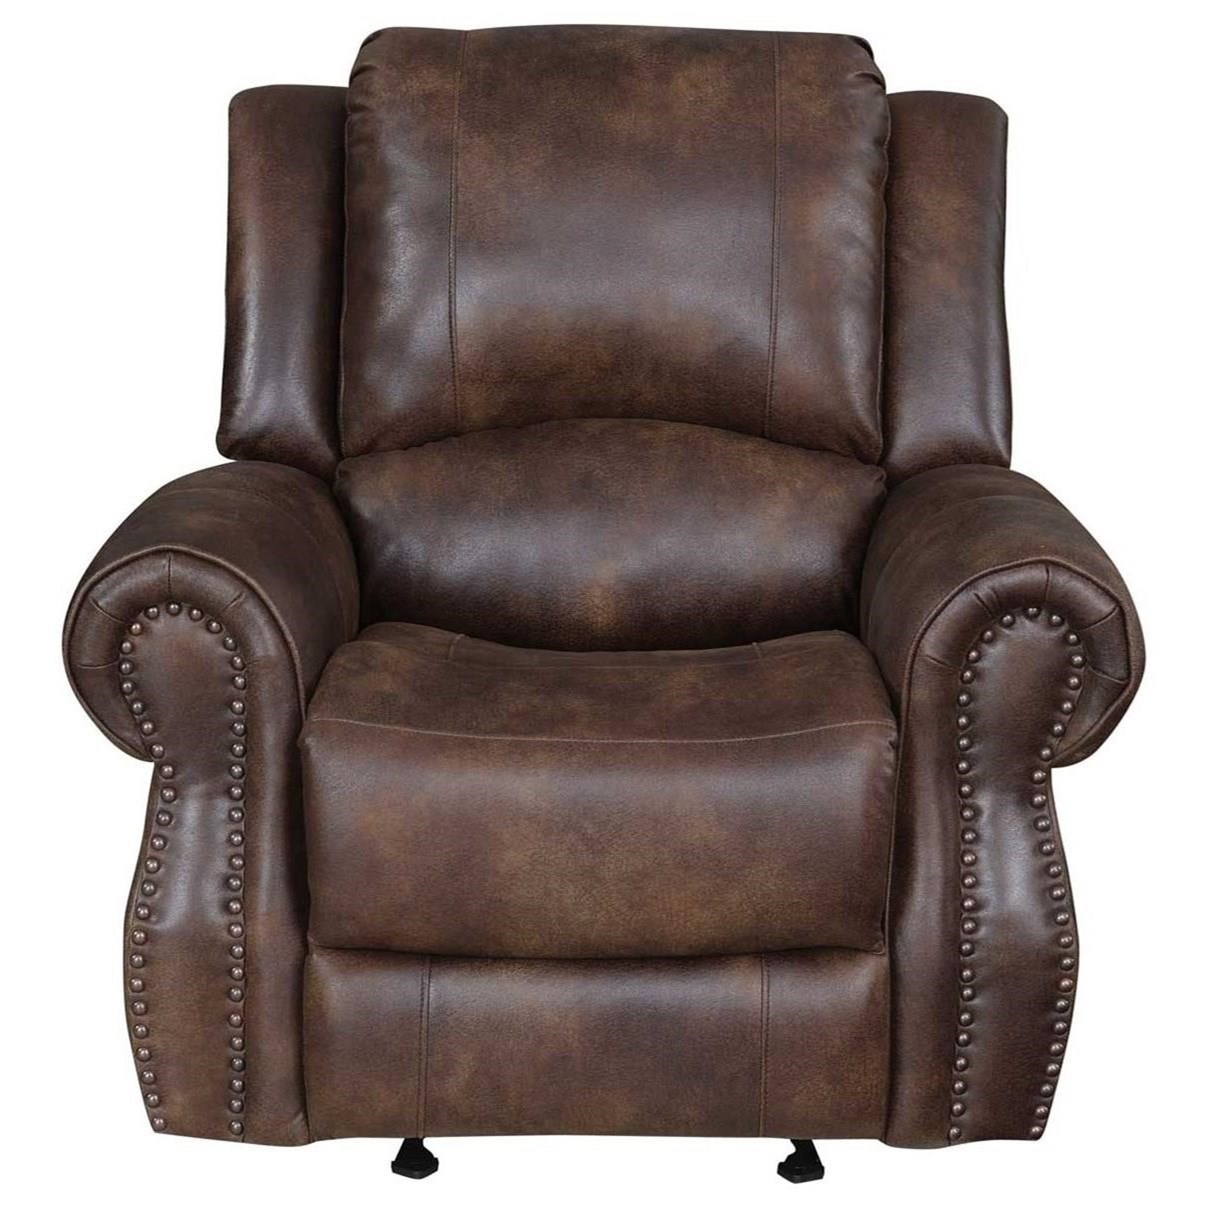 Steve Silver Navarro Na850c Faux Leather Manual Recliner Chair O Dunk O Bright Furniture Recliners